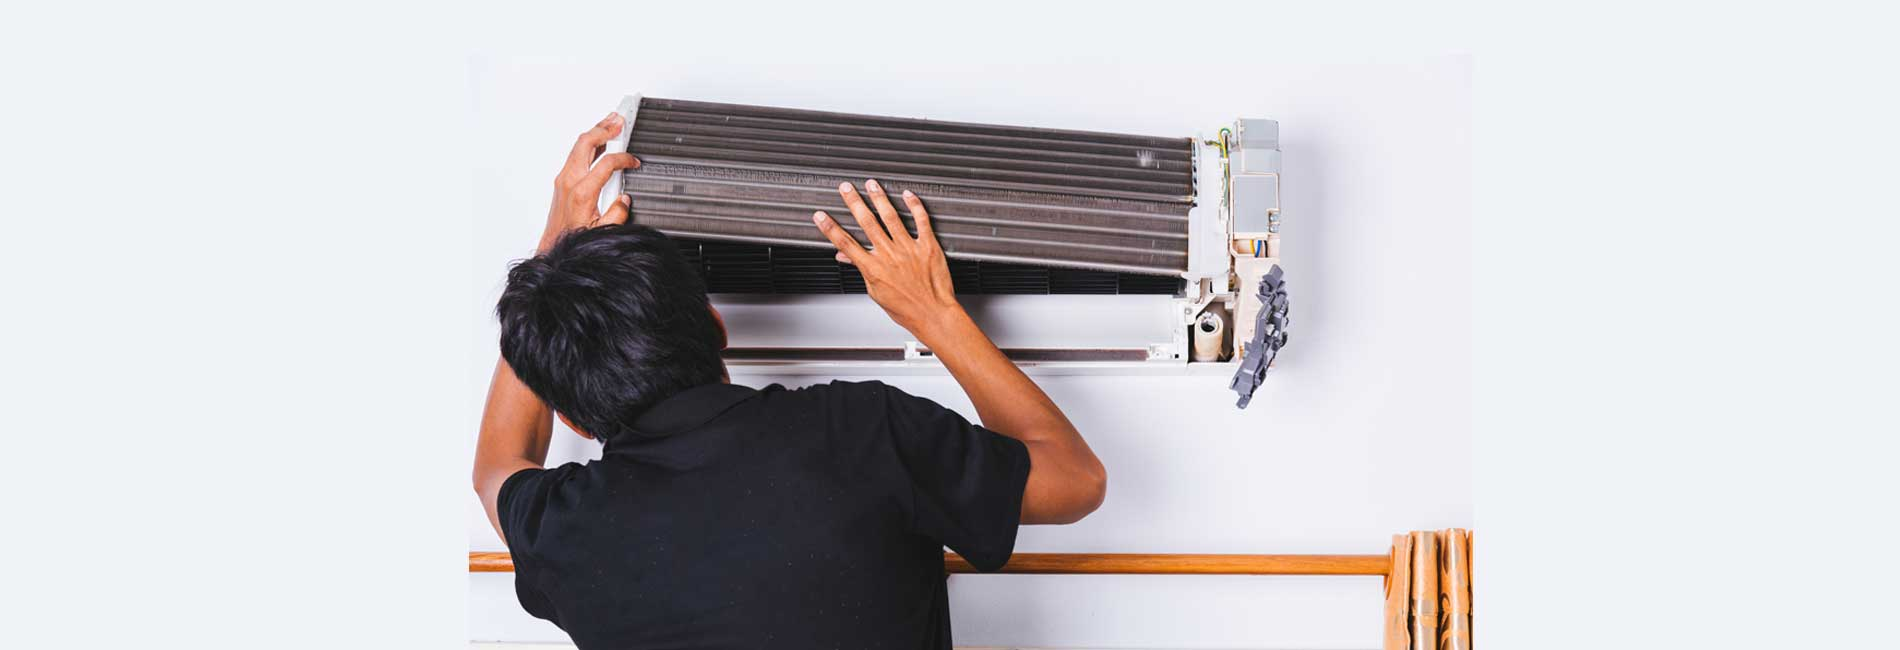 Air Condition Service in ICF